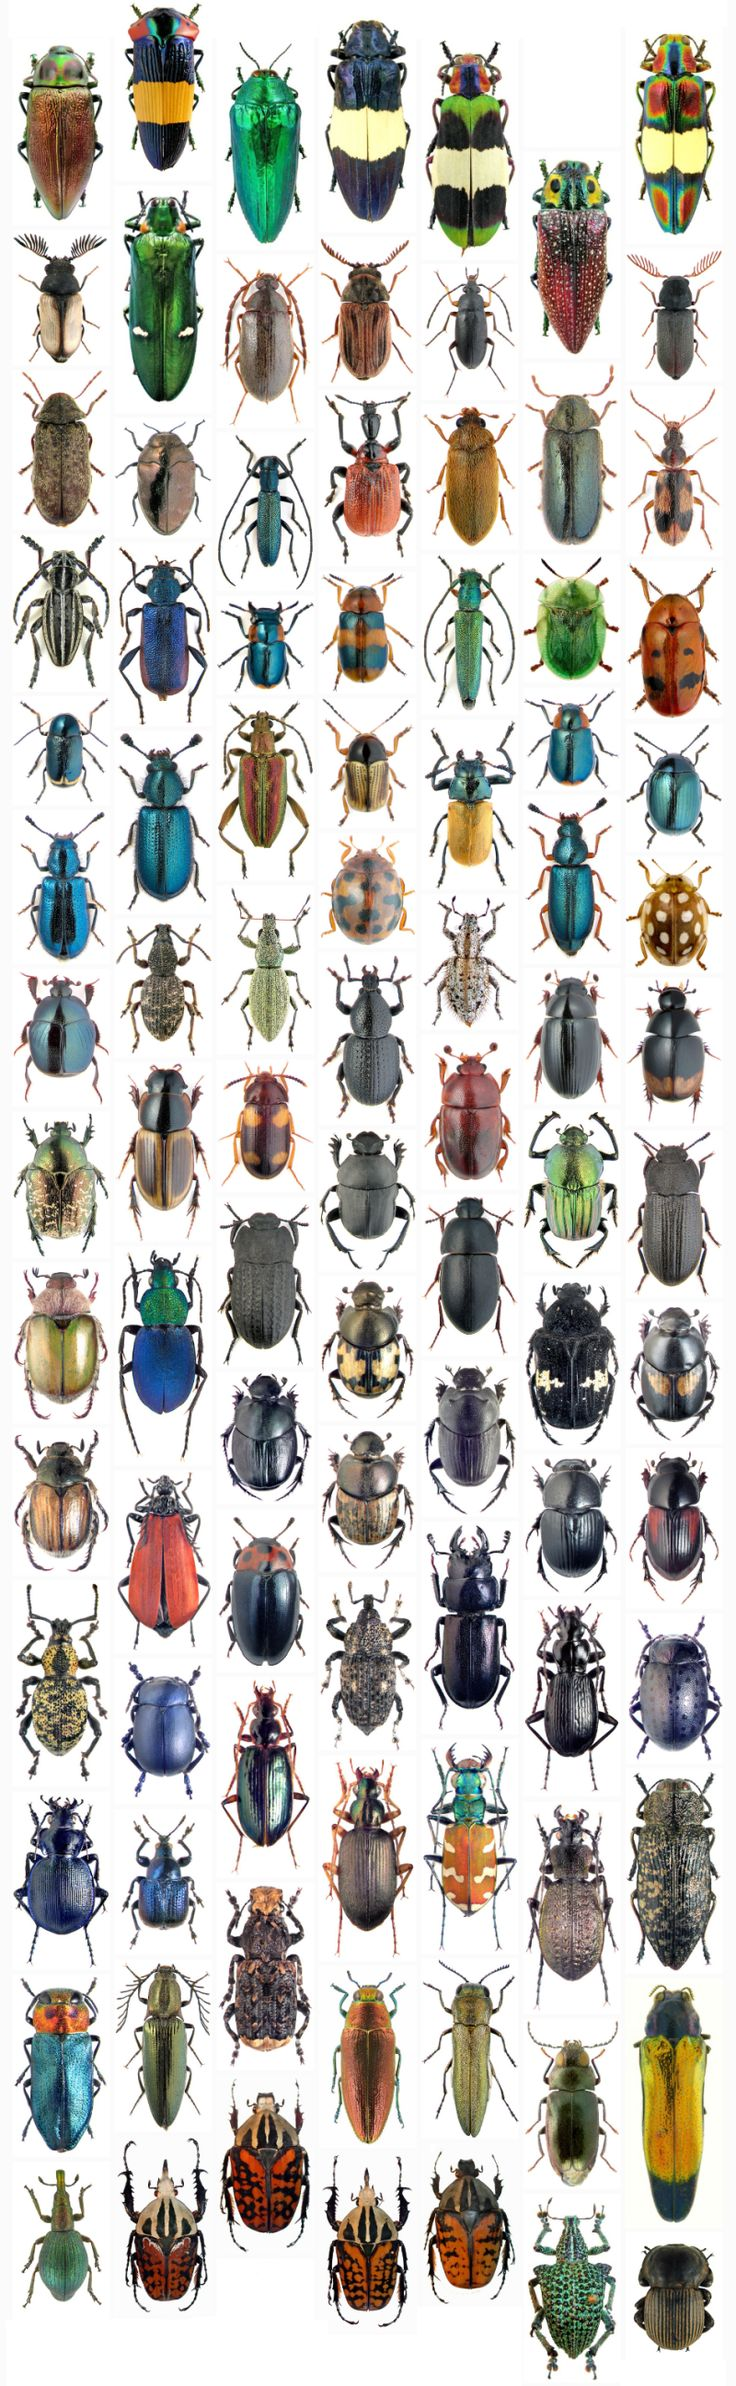 """The Creator, if He exists, has ""an inordinate fondness for beetles"". - J.B.S. Haldane; Evolutionary Biologist"